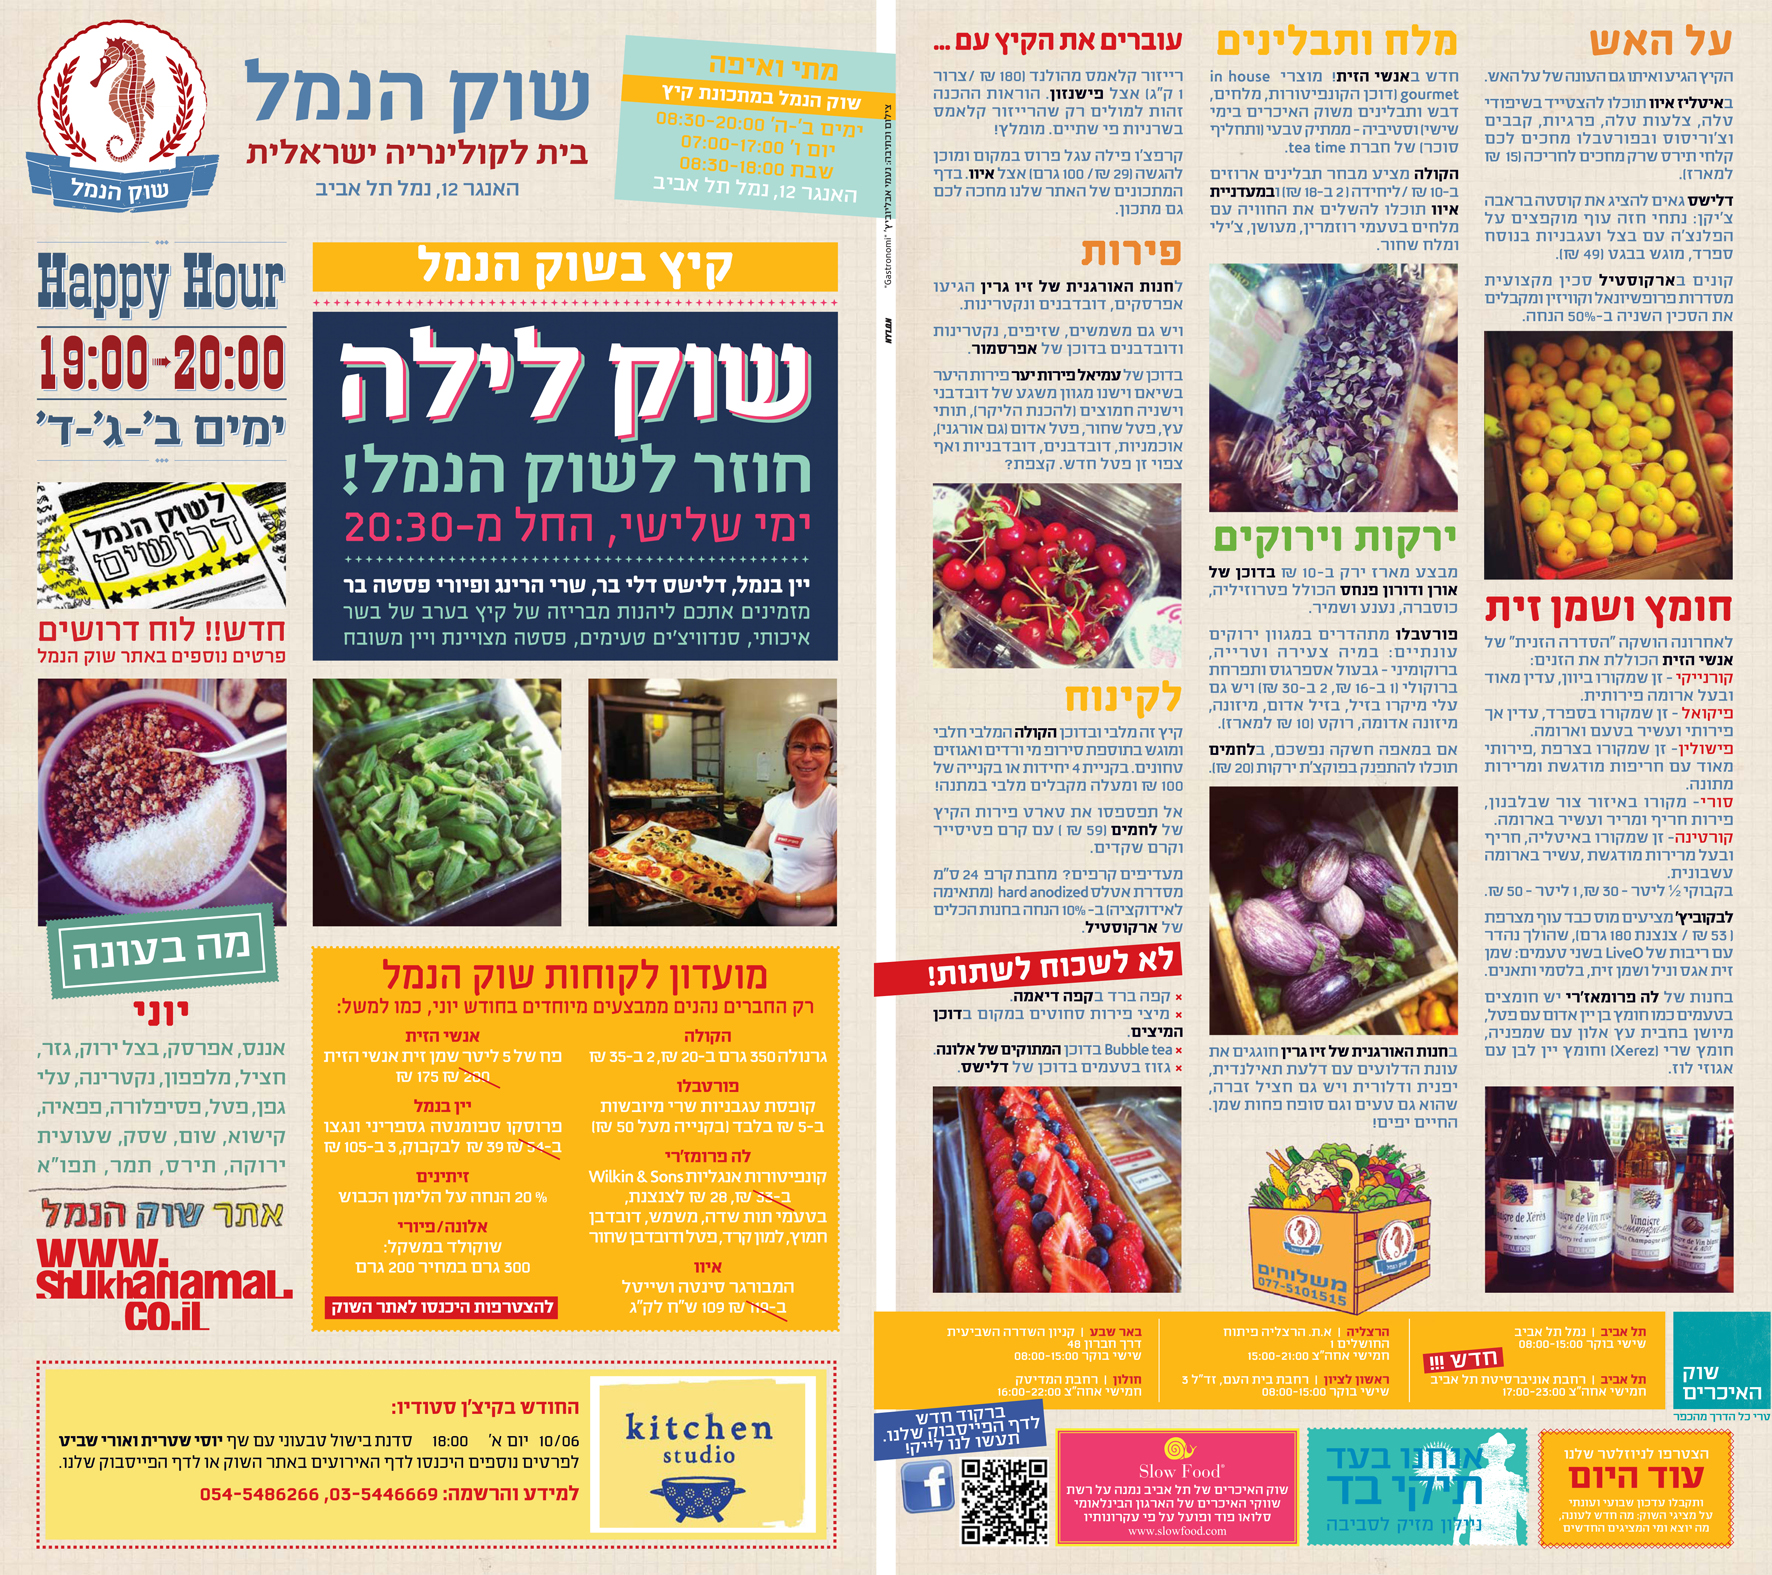 research & content - Monthly Newsletter 2012-2013Shuk Hanamal, TLV